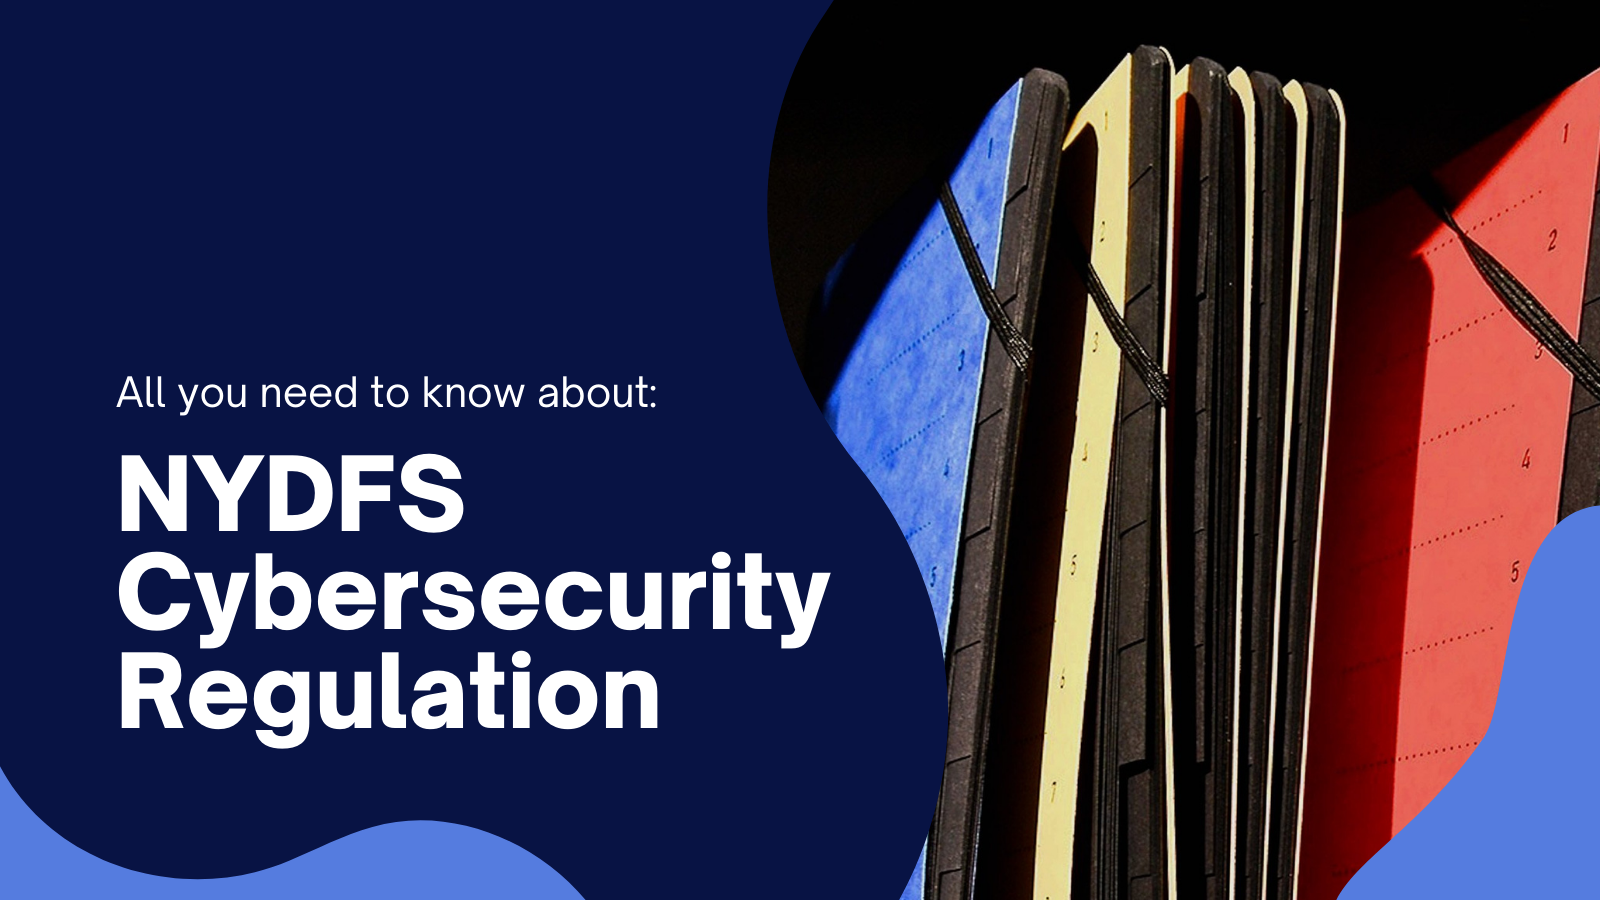 A New York special: NYDFS cybersecurity regulation (23 NYCRR 500)